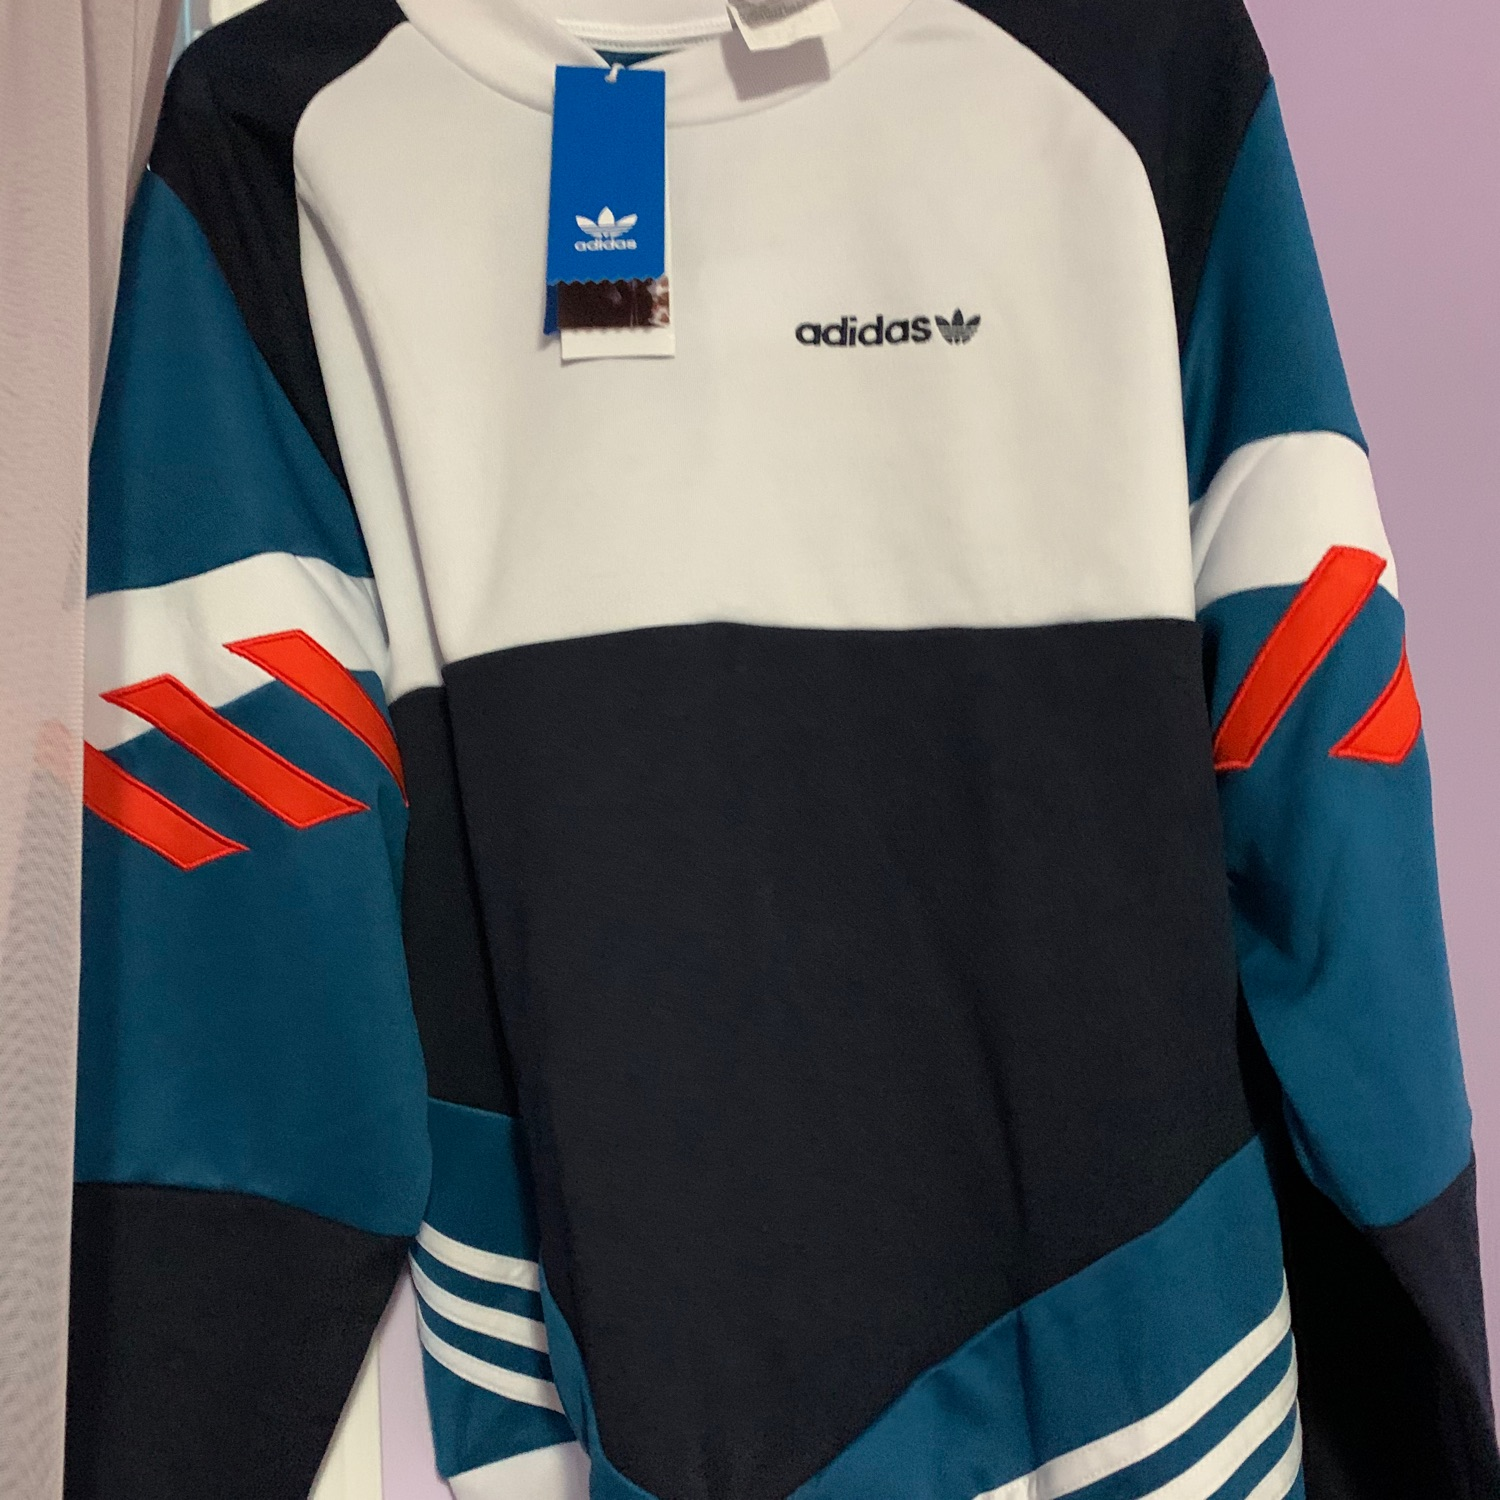 adidas originals nova retro sweatshirt in black